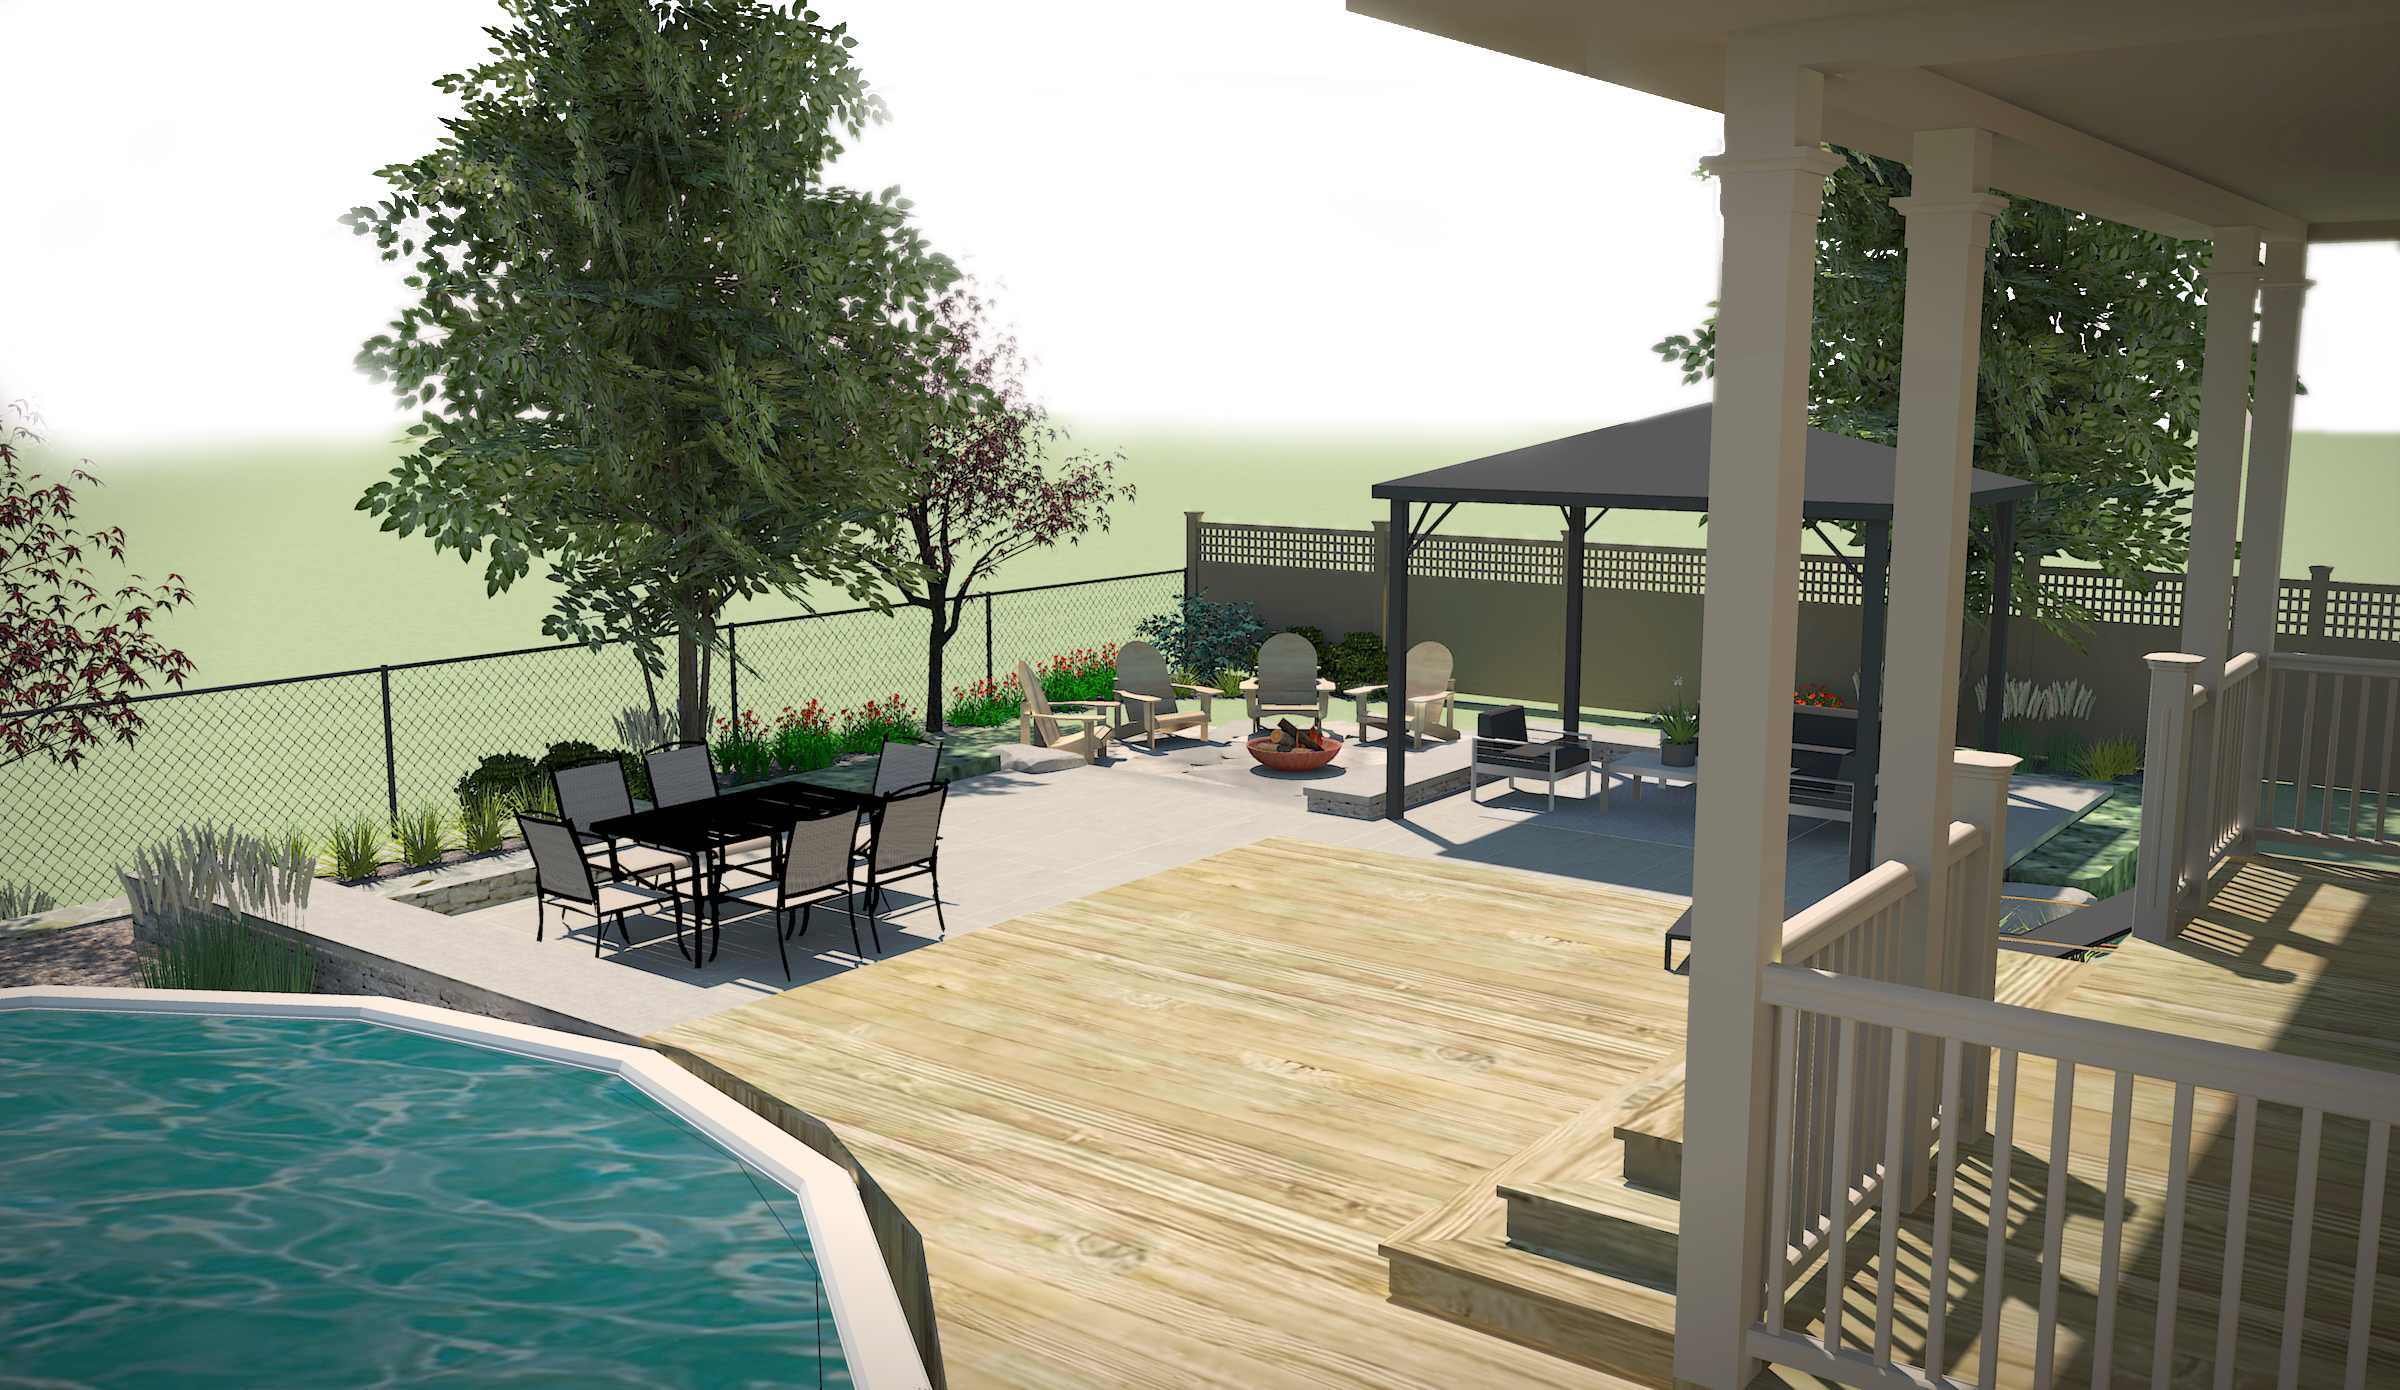 Riverview Design Solutions_Concept Drawing_Landscape Designs_BL from deck.jpg